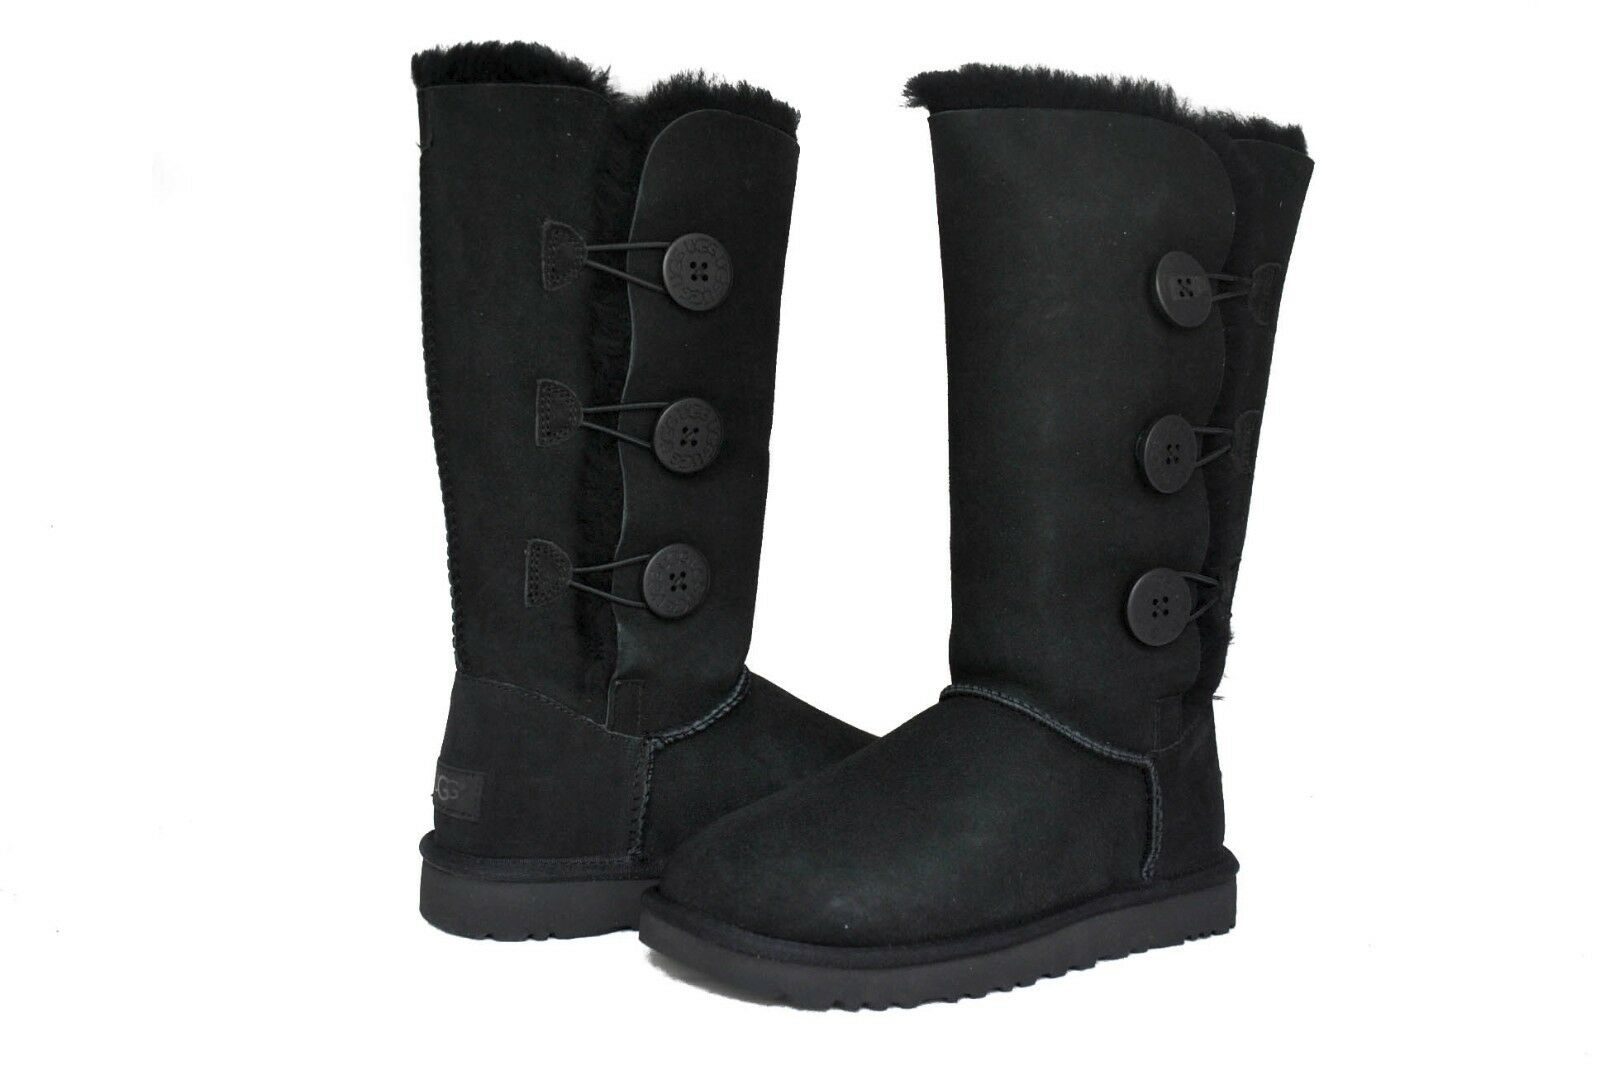 UGG Australia Women Bailey Button Triplet 2 II Boots 1016227 Black Chestnut Grey